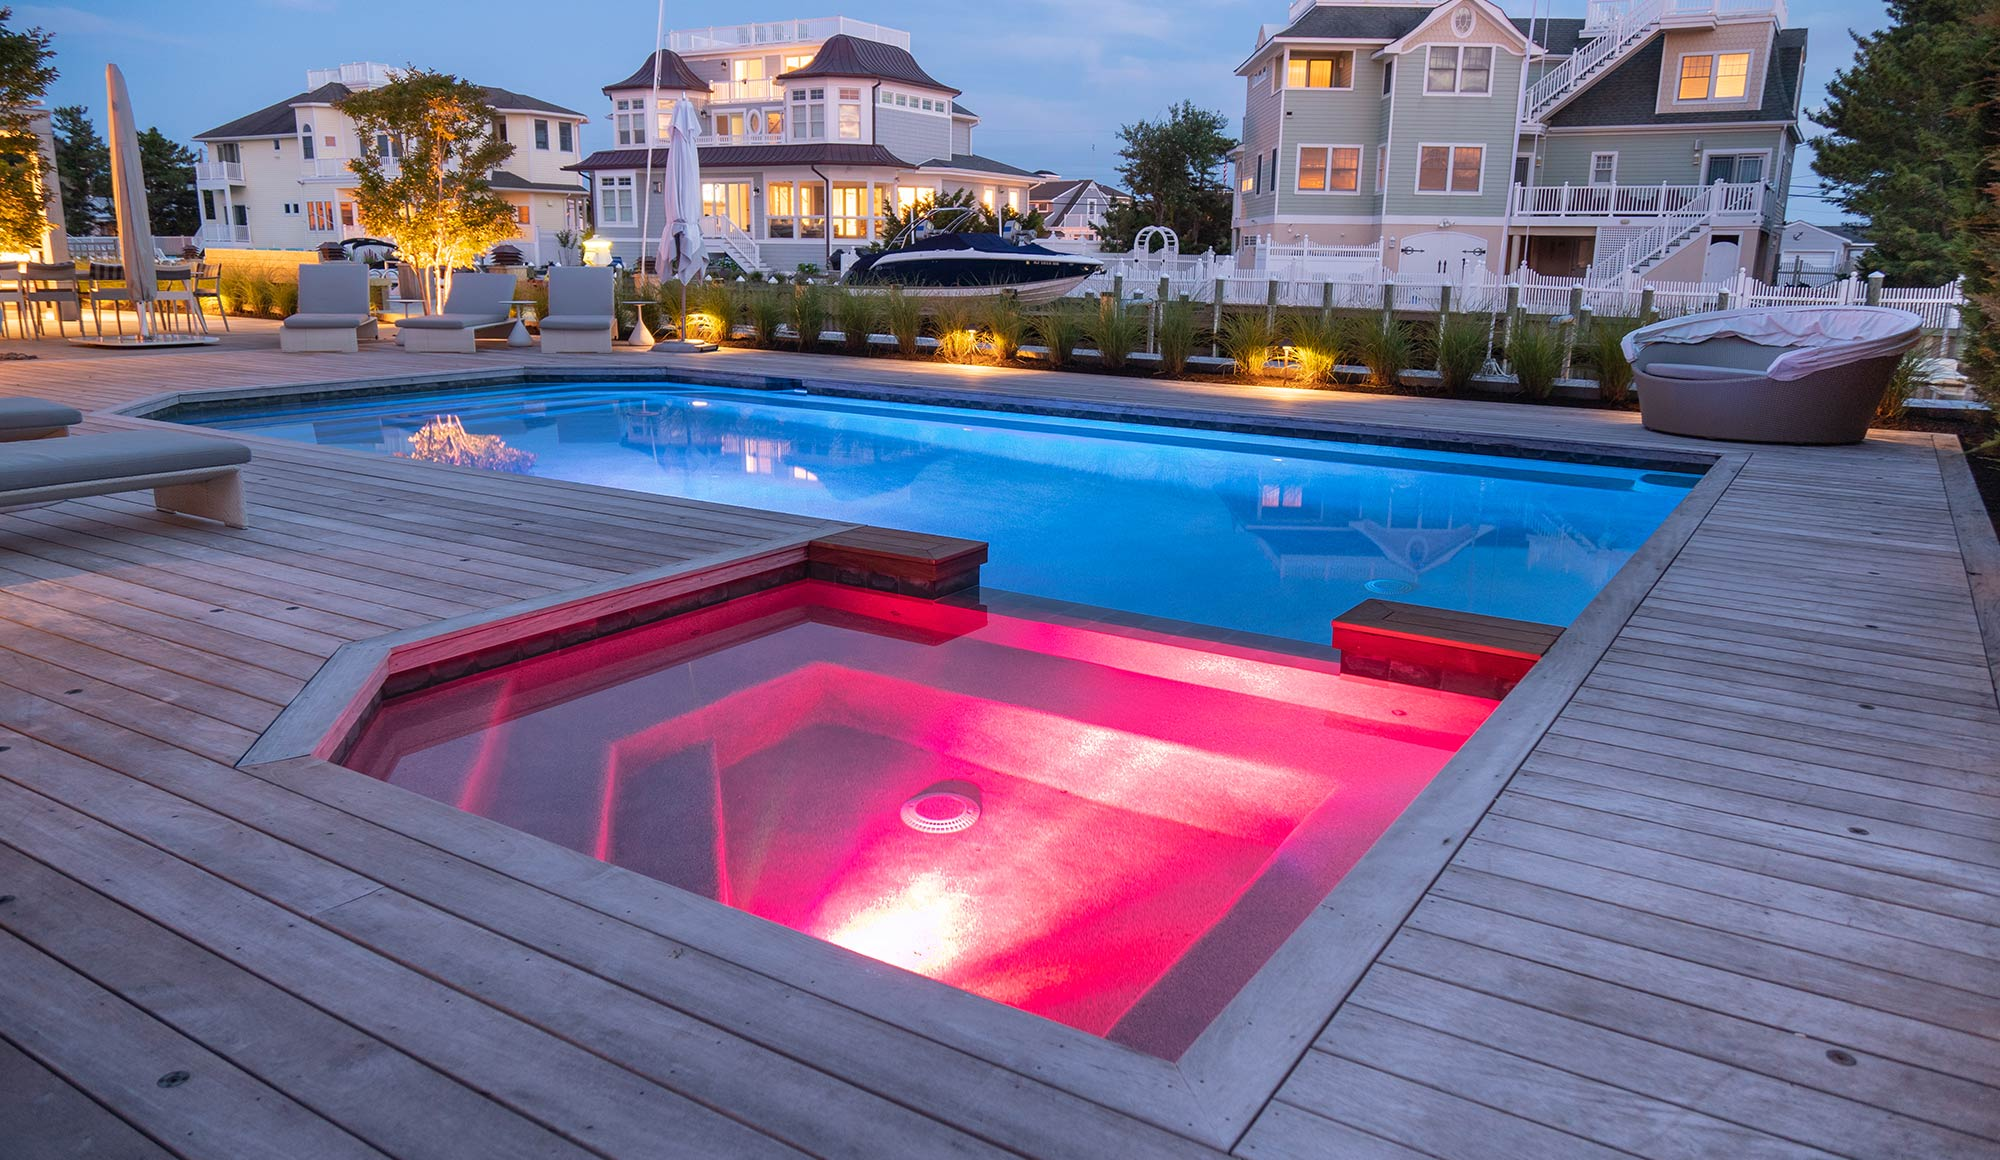 Outdoor Lighting Design in Loveladies